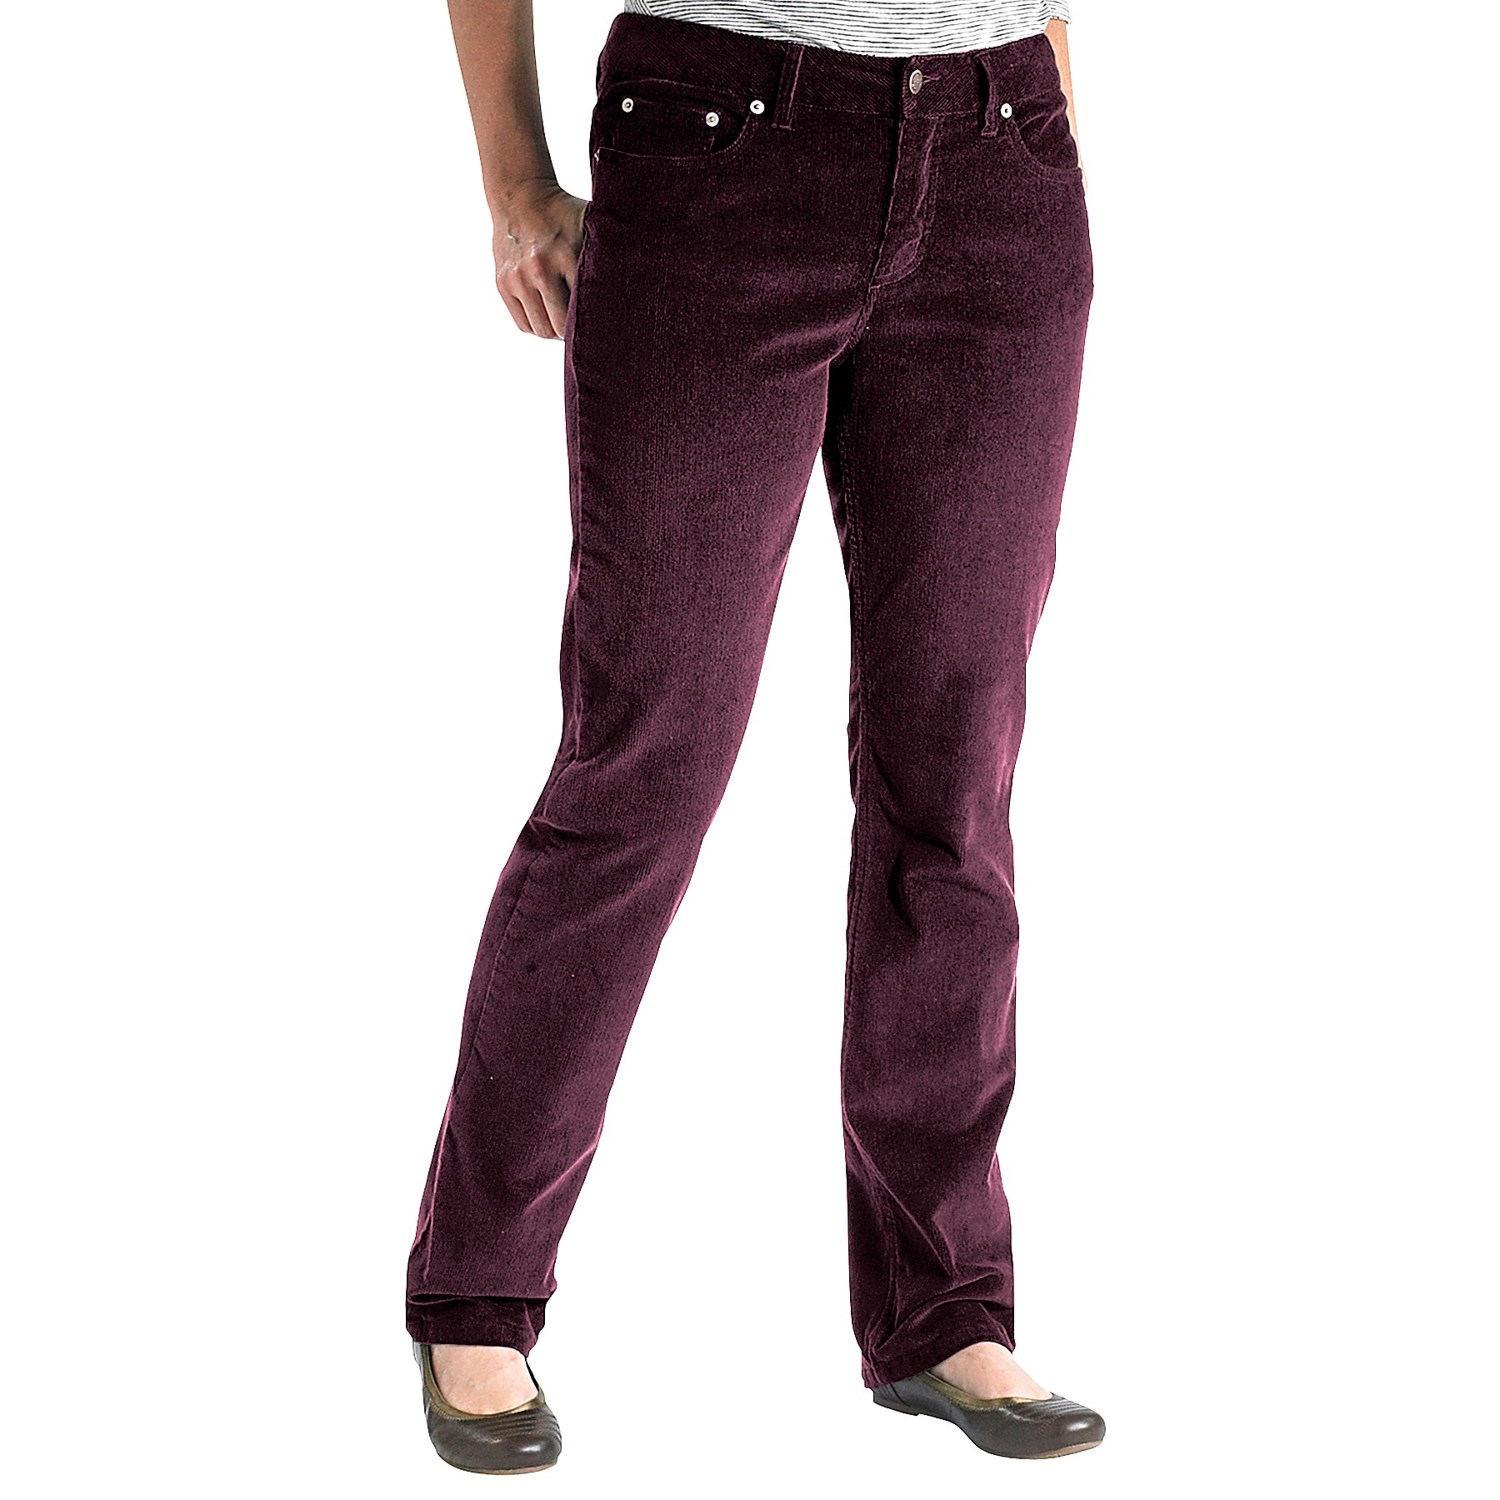 Luxury JAG Carla Corduroy Pants  Low Rise Bootcut For Women  Save 46